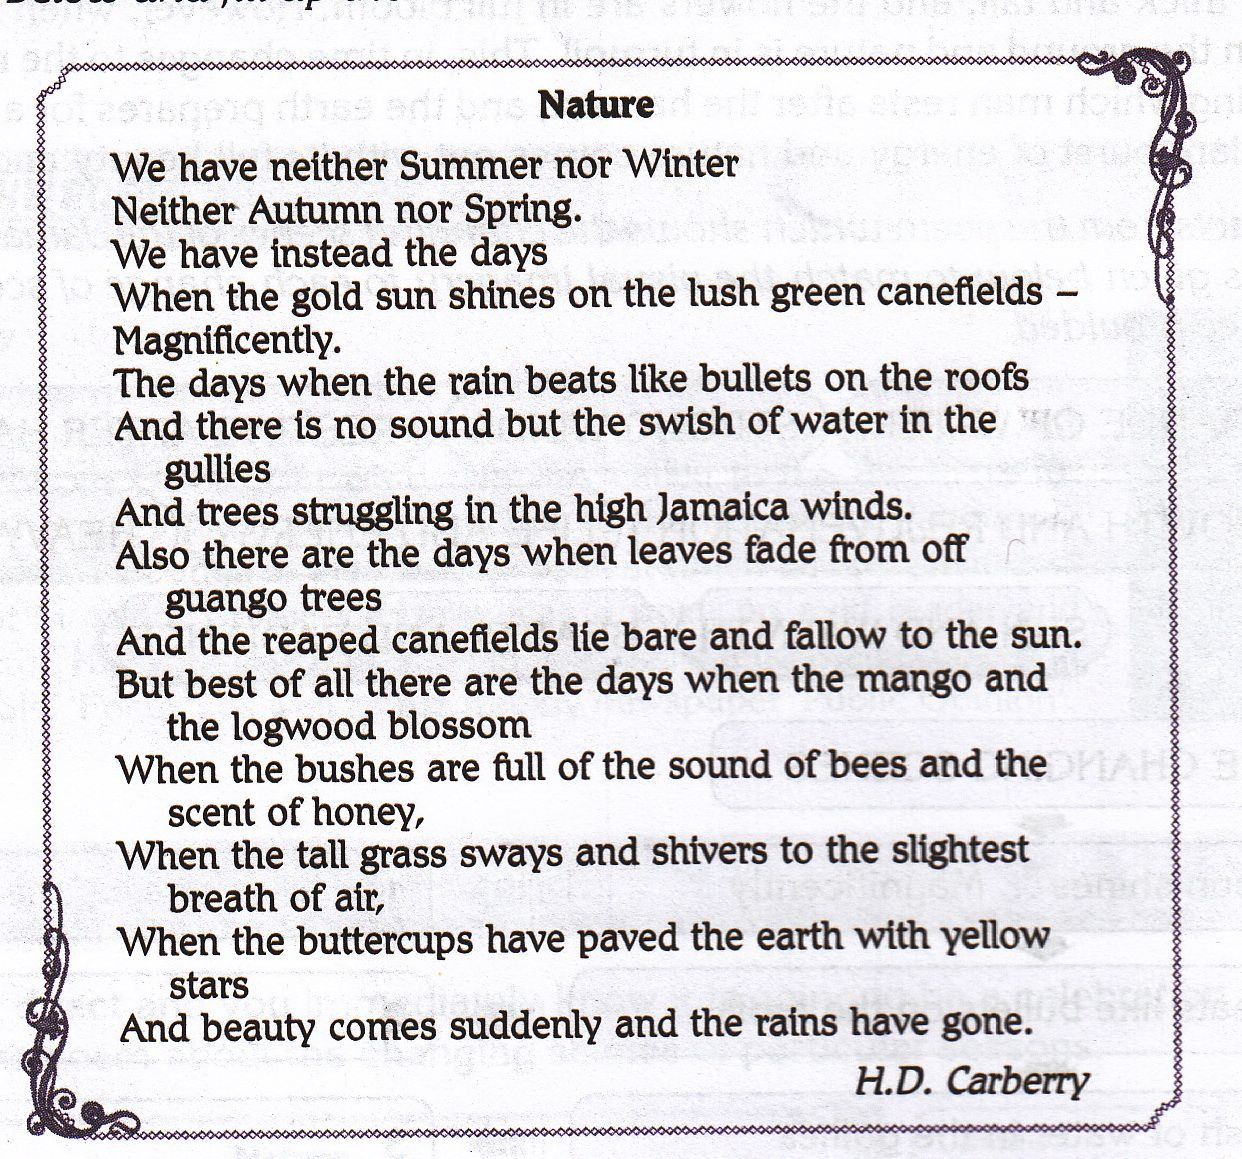 Famous Nature Poems